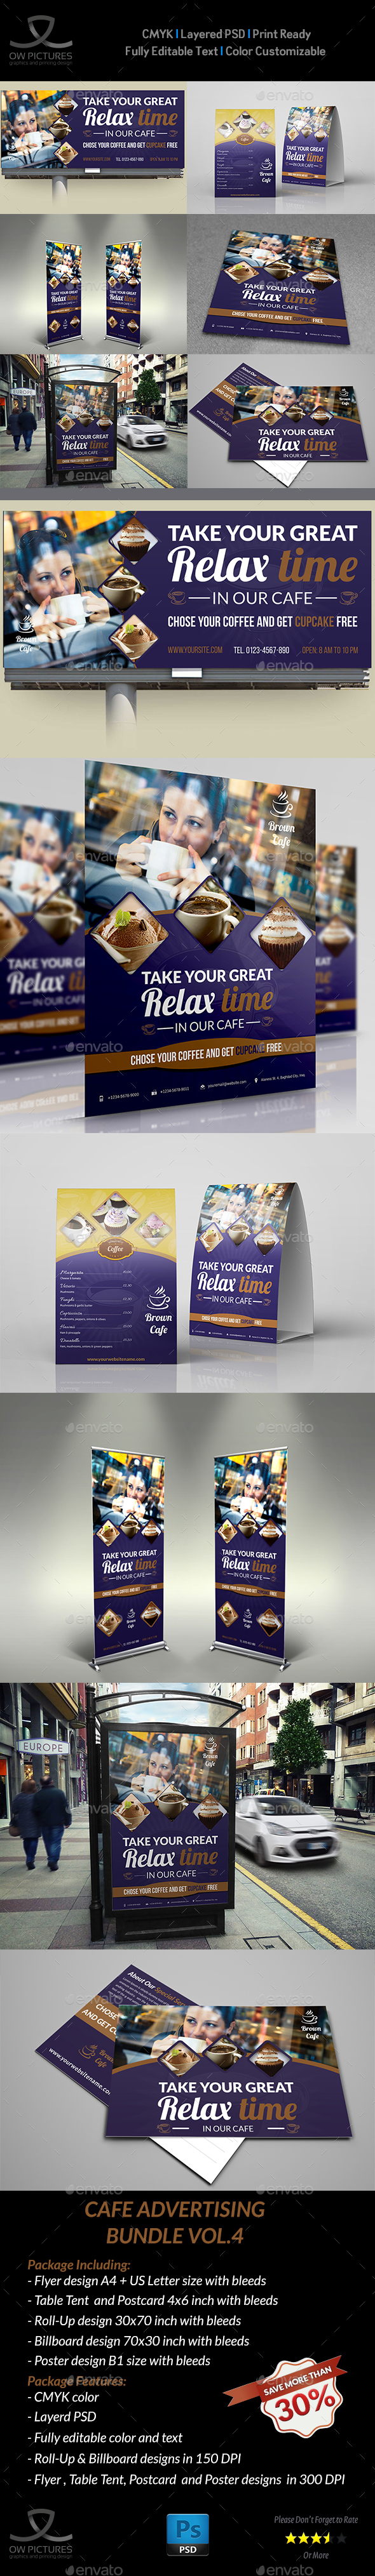 Cafe - Coffee Shop Advertising Bundle Vol.4 - Signage Print Templates